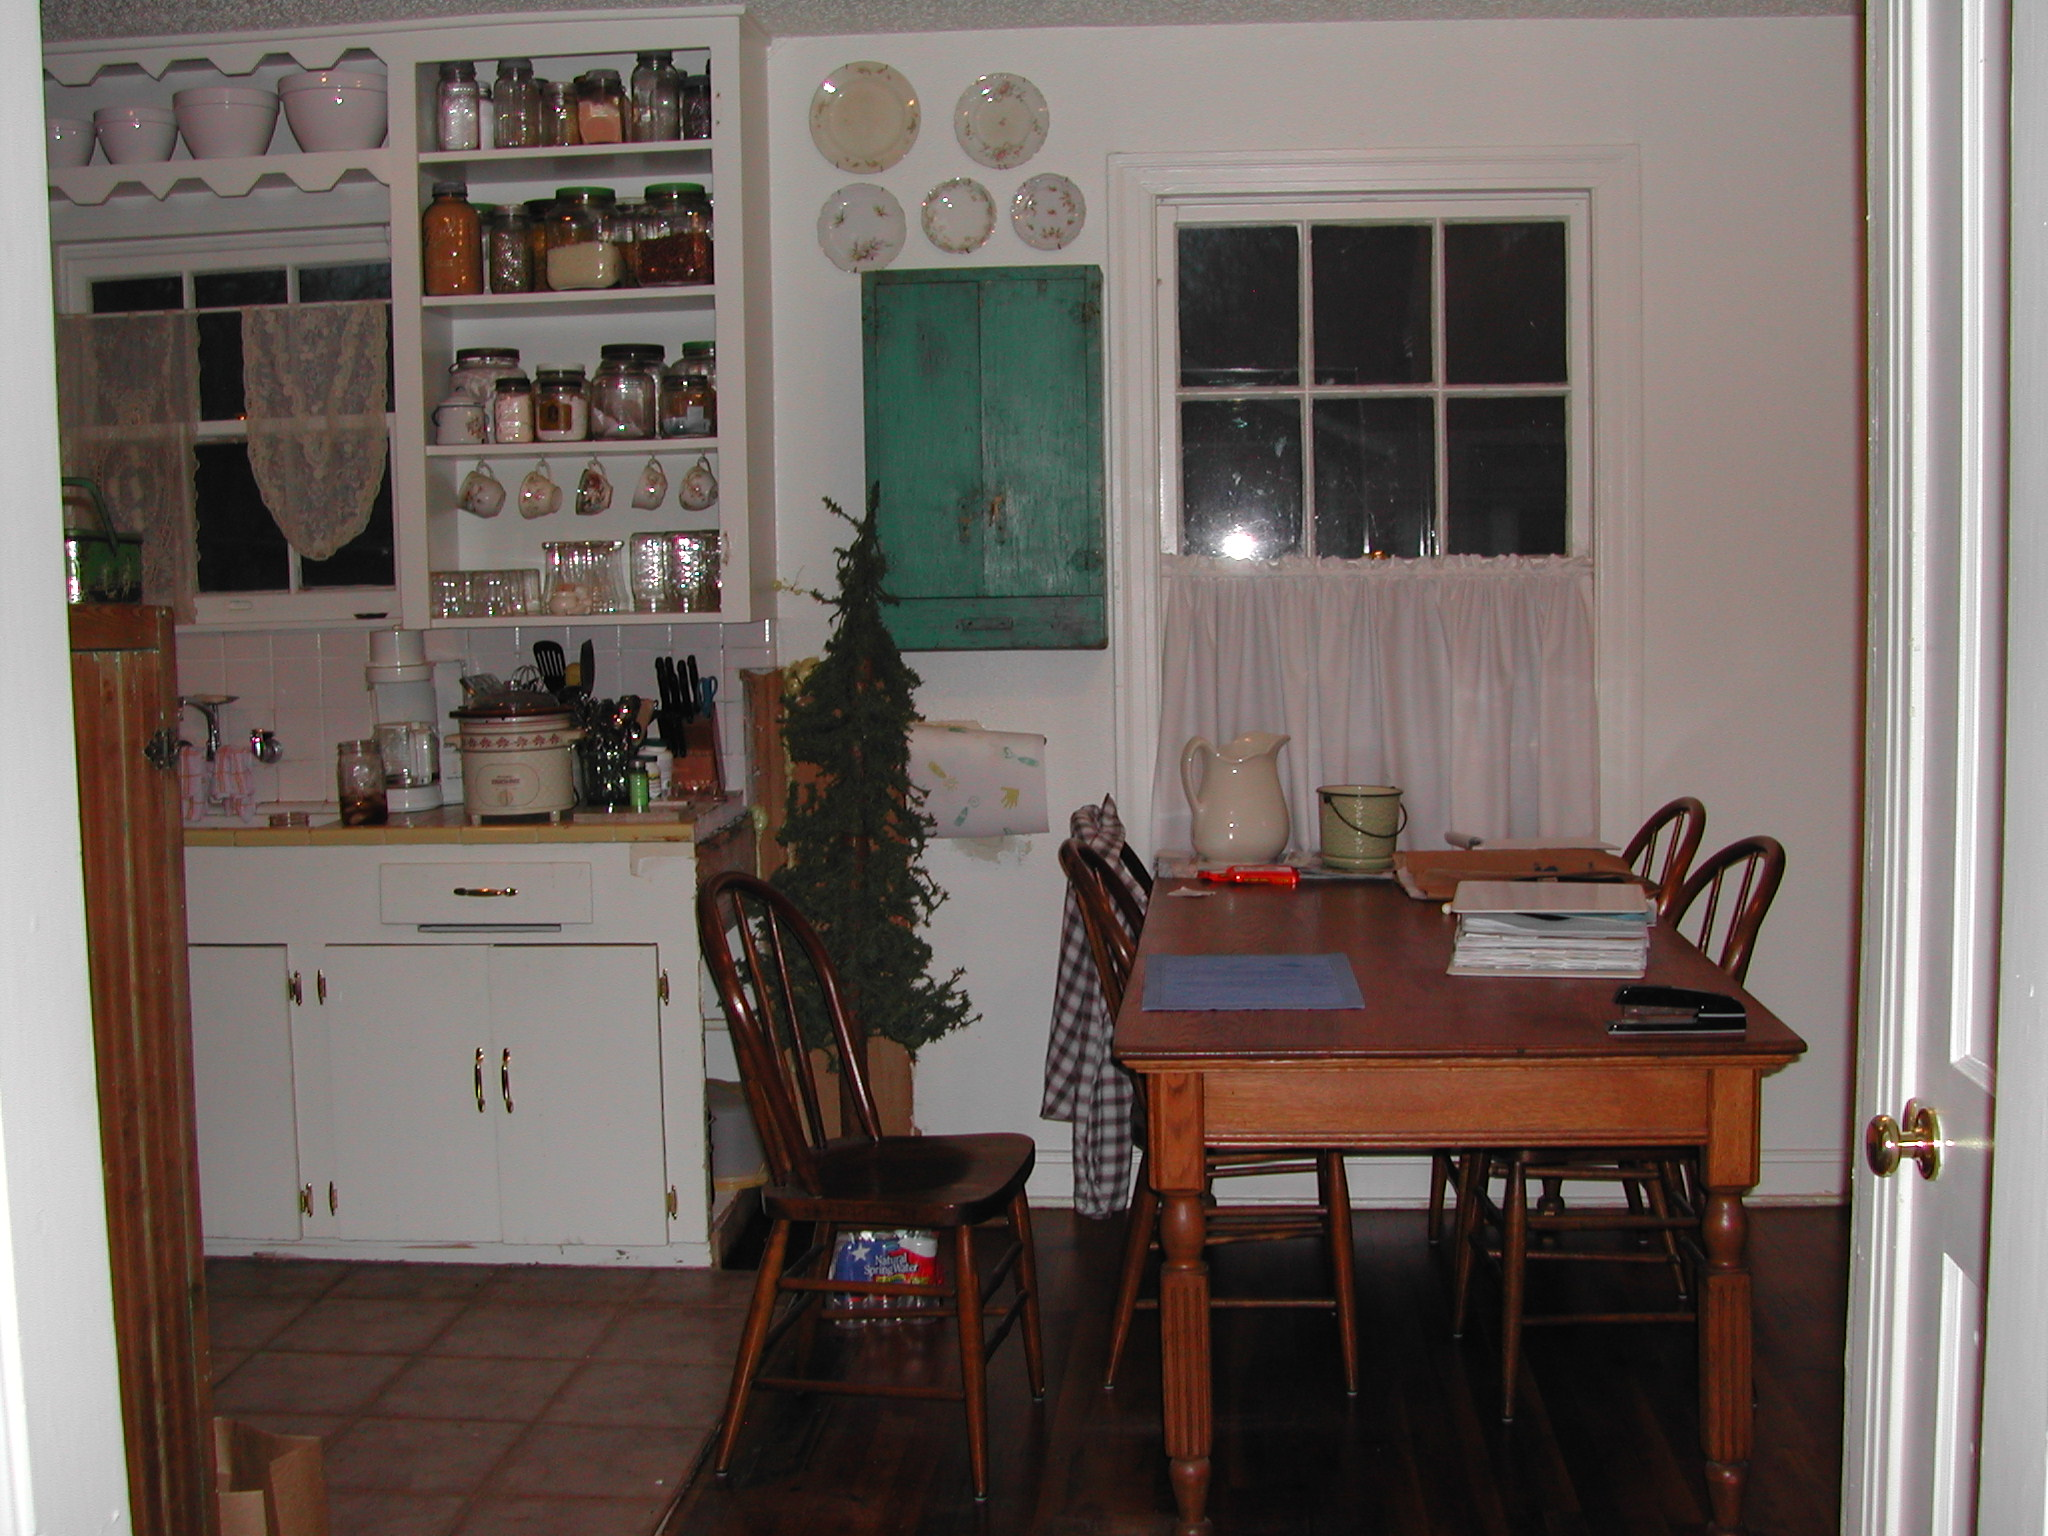 Ruth Avenue kitchen and dining room - before